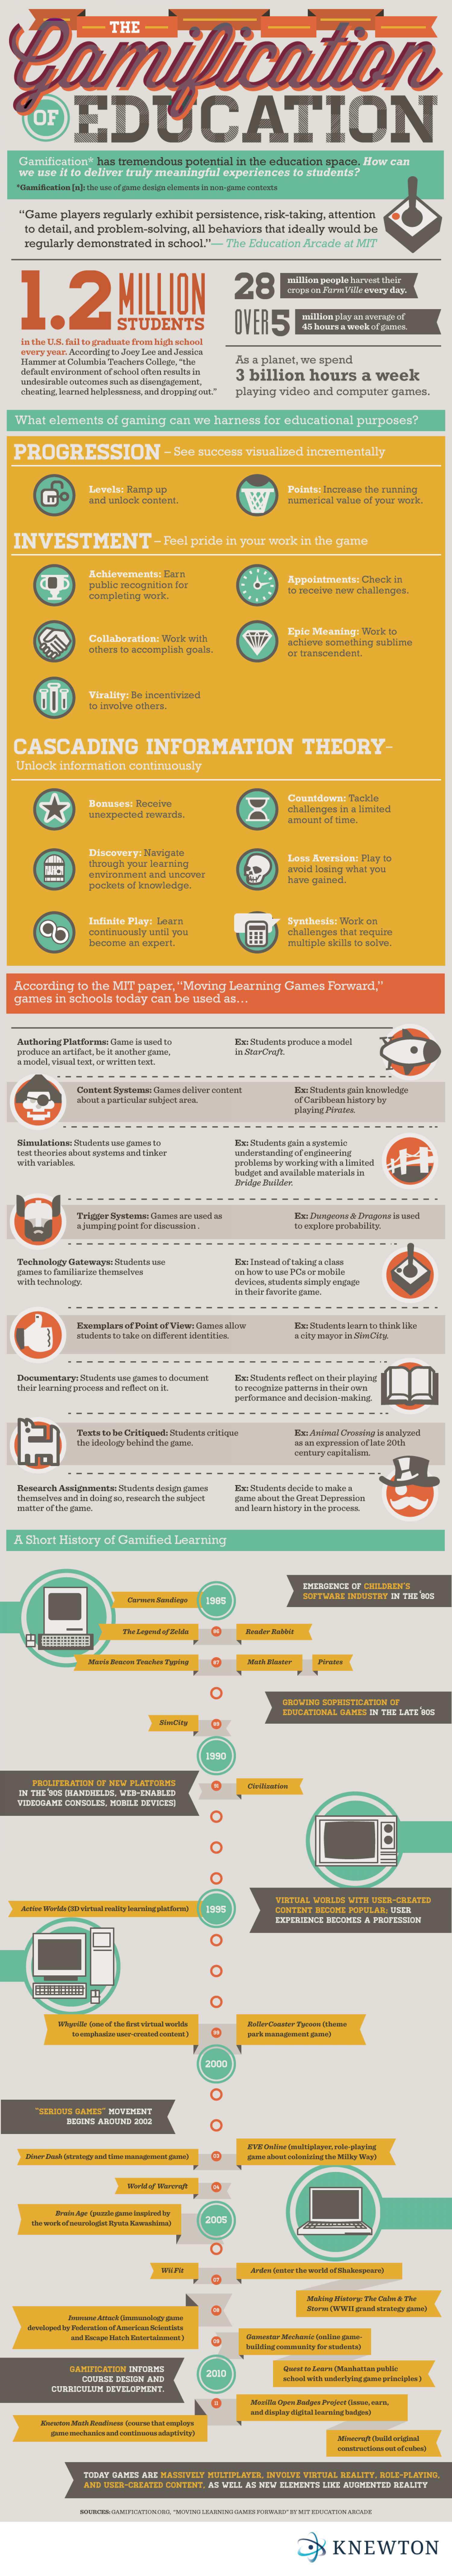 The Gamification of Education Infographic